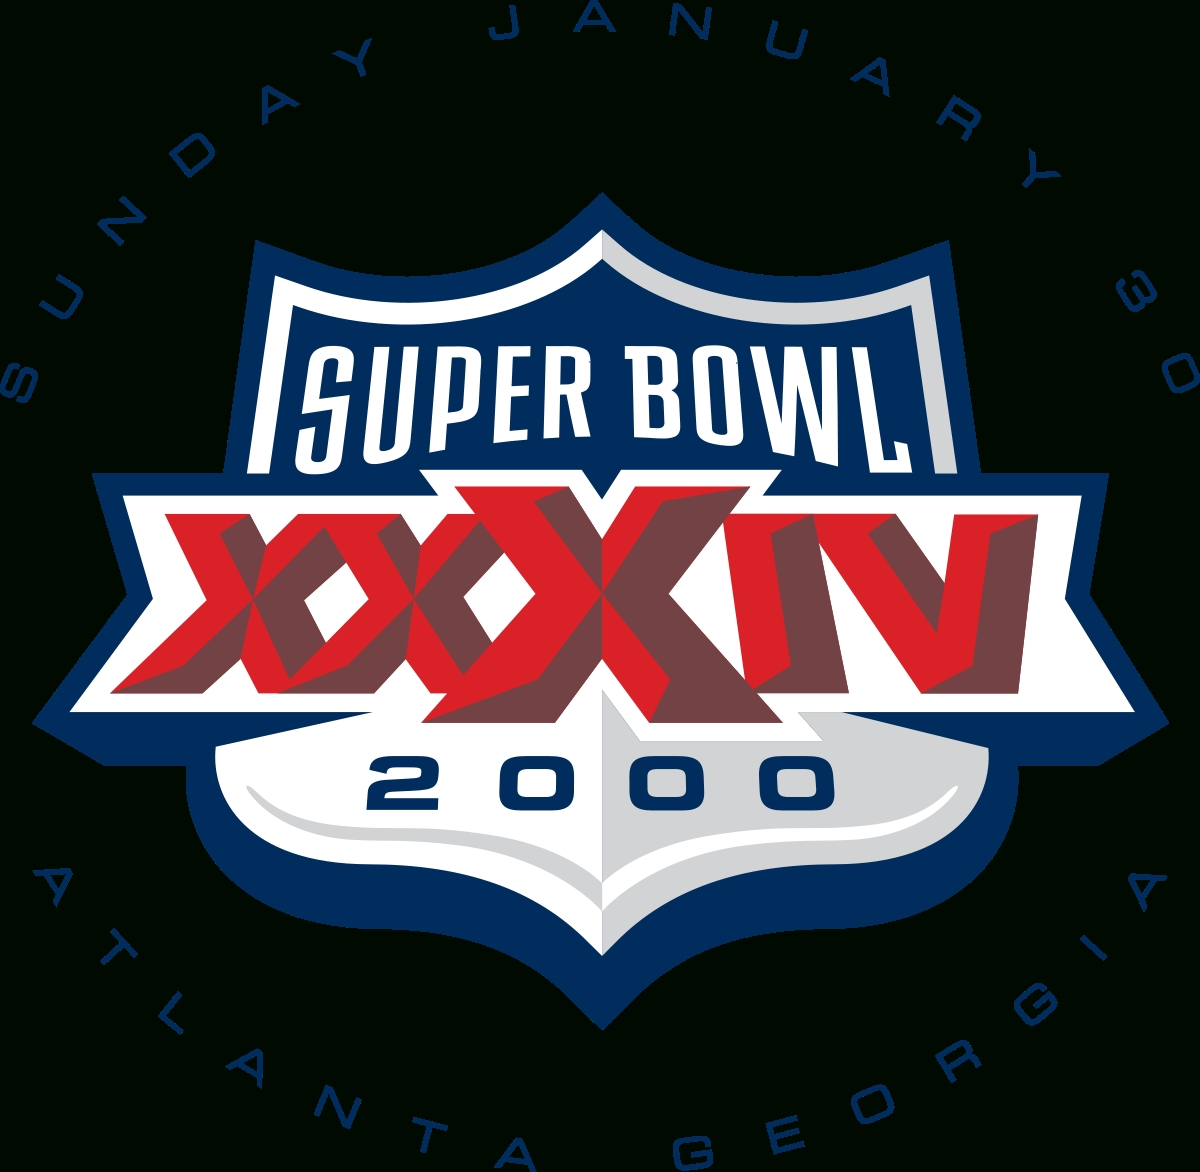 Super Bowl Xxxiv - Wikipedia for Have The Rams Ever Won A Superbowl